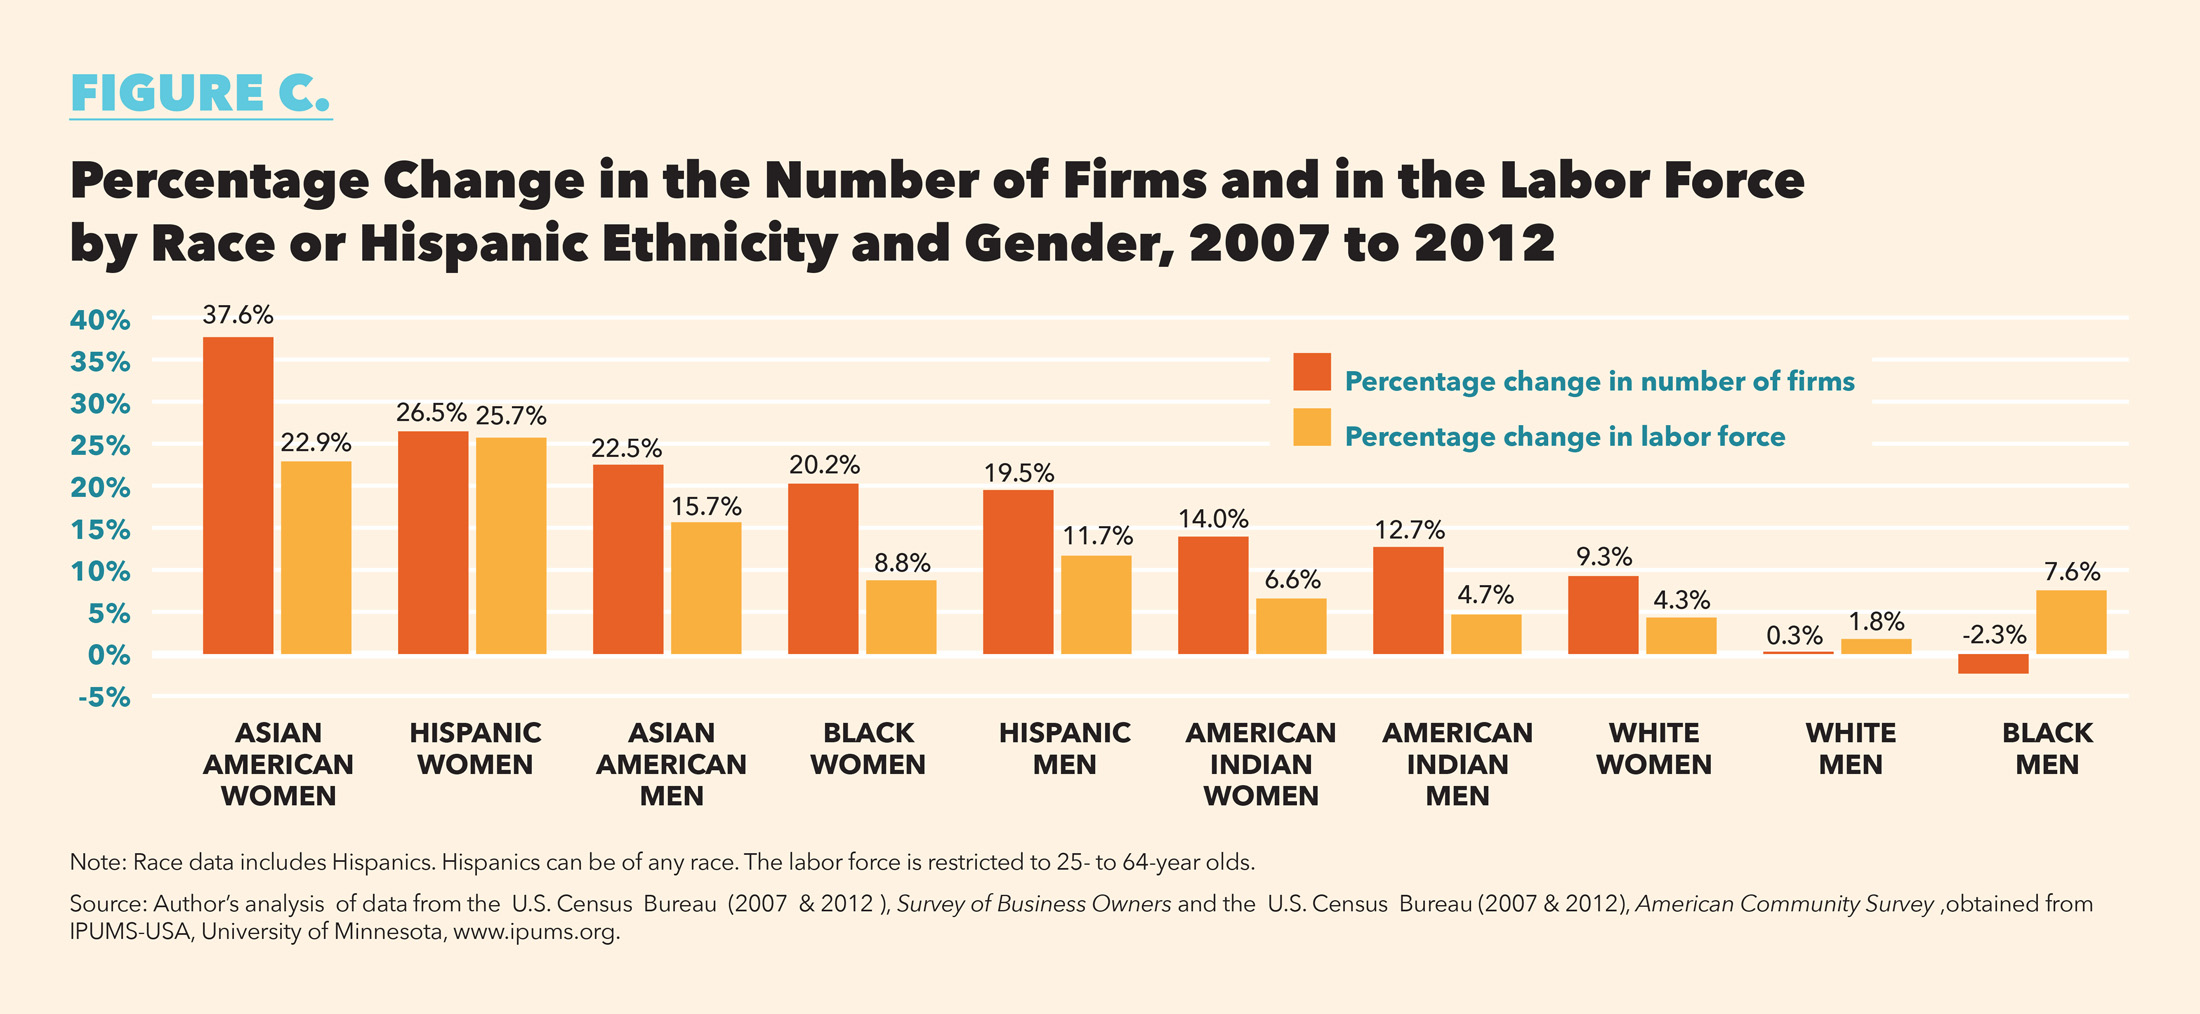 C-Change in number of firms